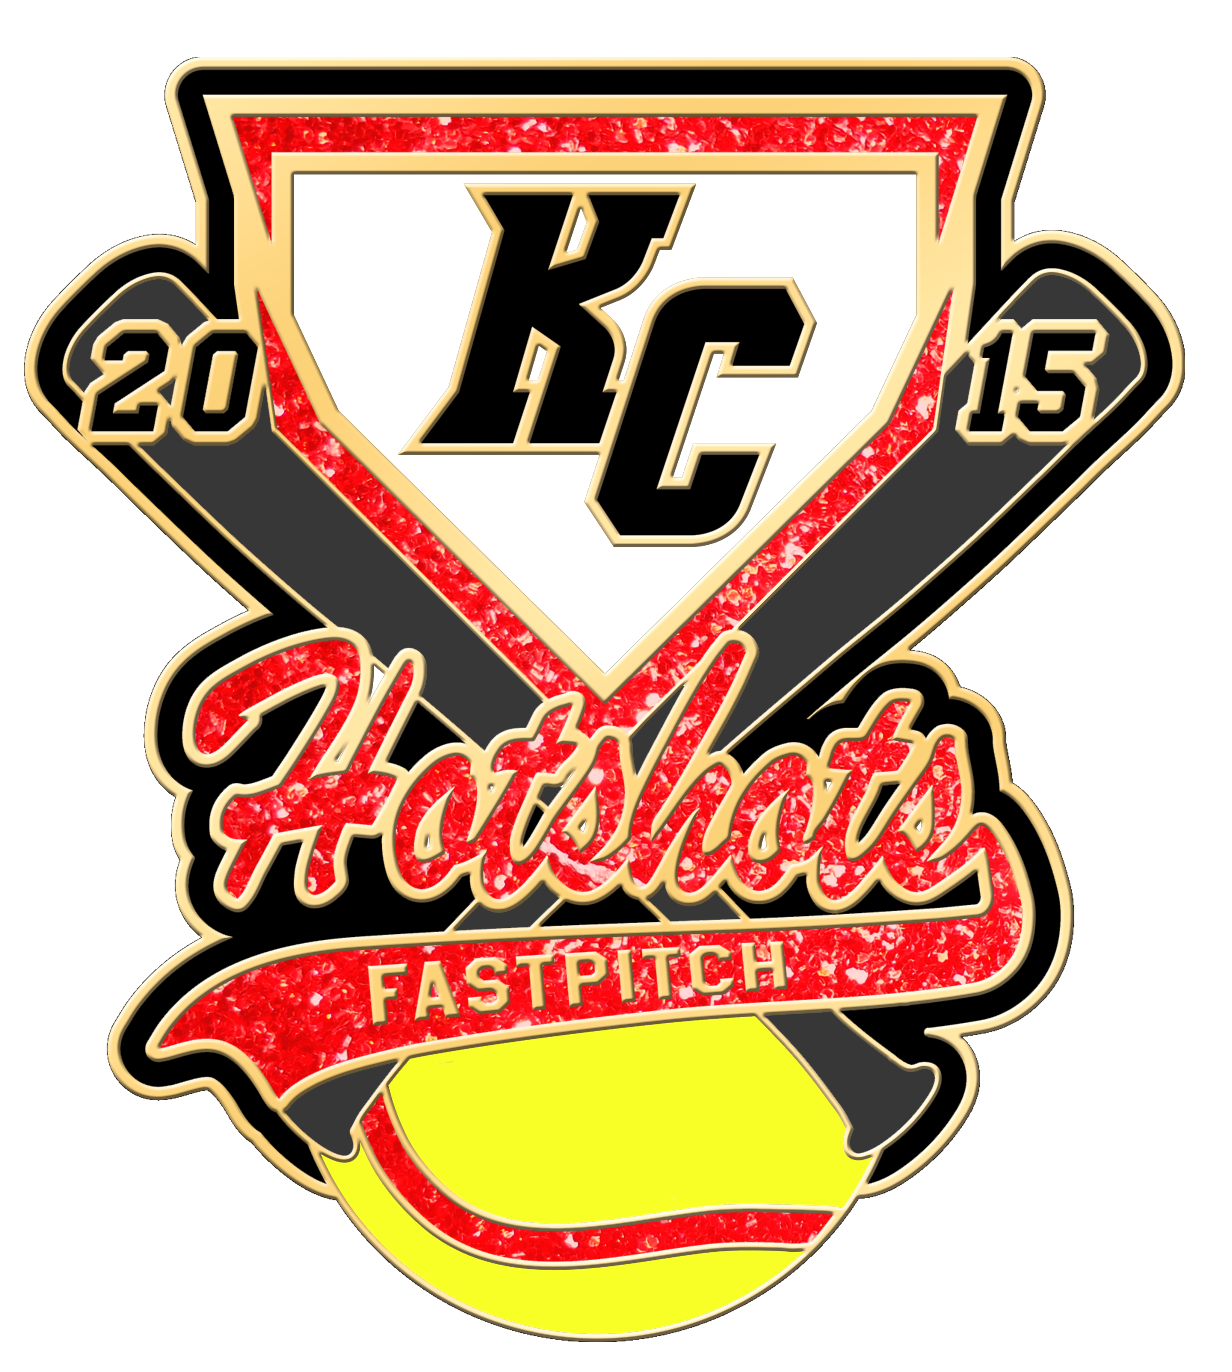 custom made fastpitch softball trading pins.png